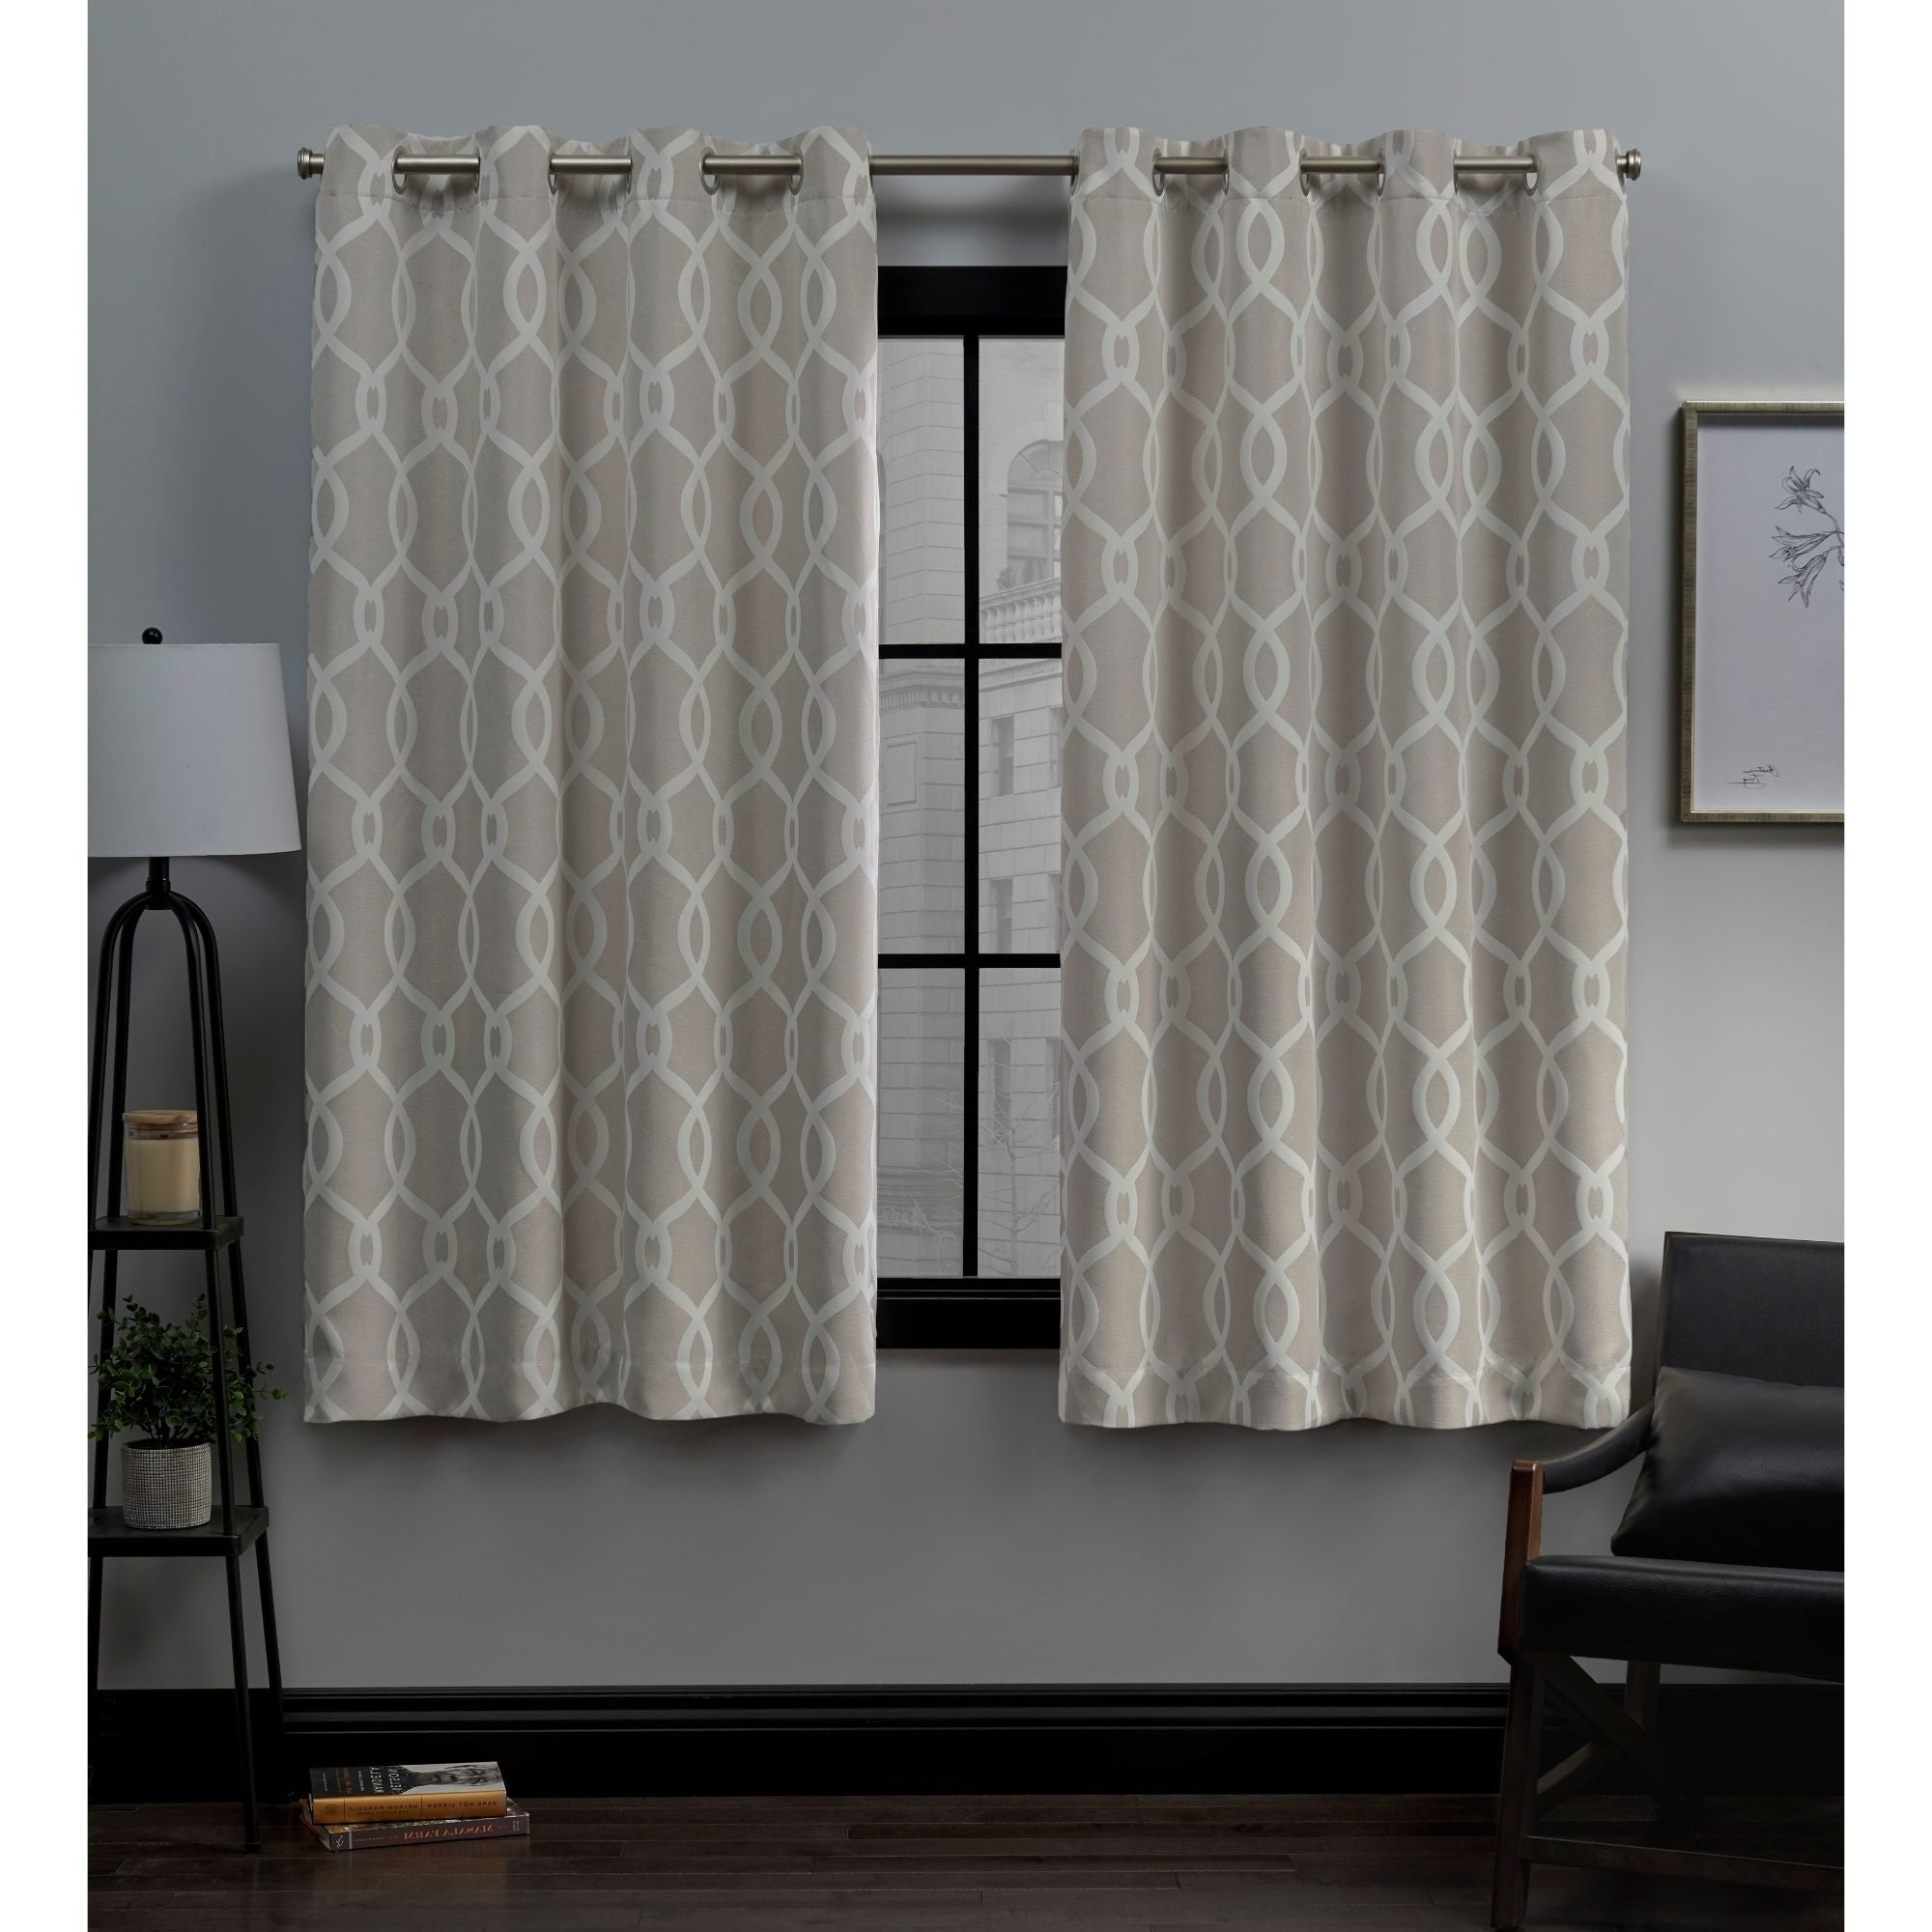 Well Known Forest Hill Woven Blackout Grommet Top Curtain Panel Pairs Pertaining To Ati Home Trilogi Woven Blackout Grommet Top Curtain Panel Pair (View 6 of 20)